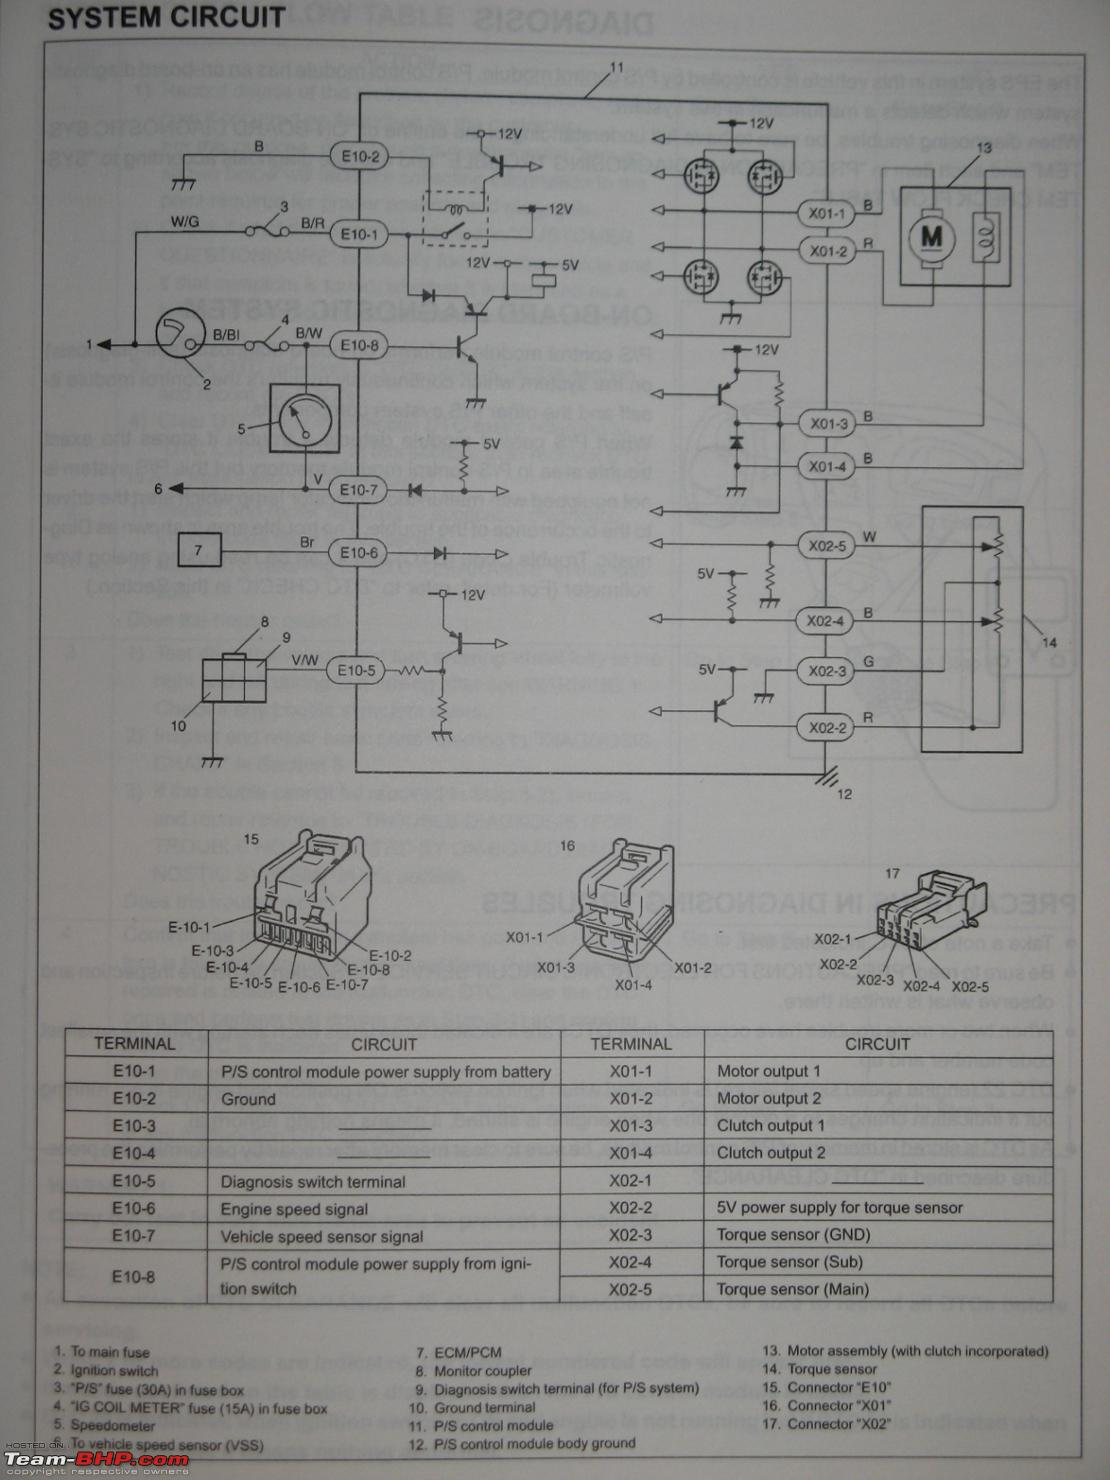 hight resolution of maruti alto electrical wiring diagram pdf 41 wiring diagrams of electrical panel to transformer to disconnect